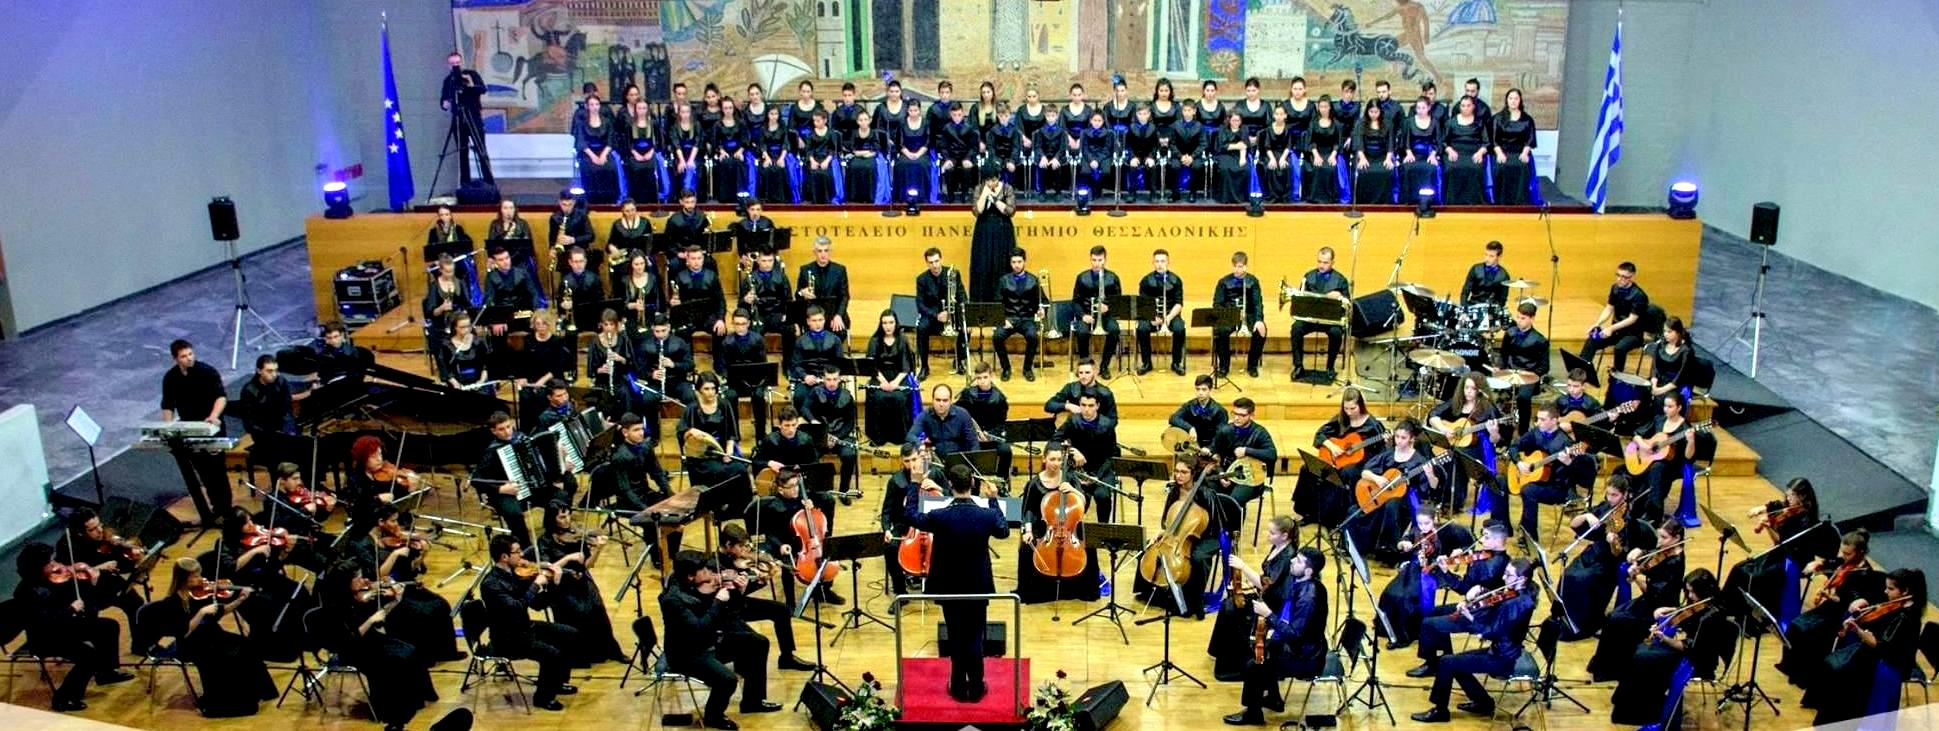 Youth symphony orchestra of greece_passion theater